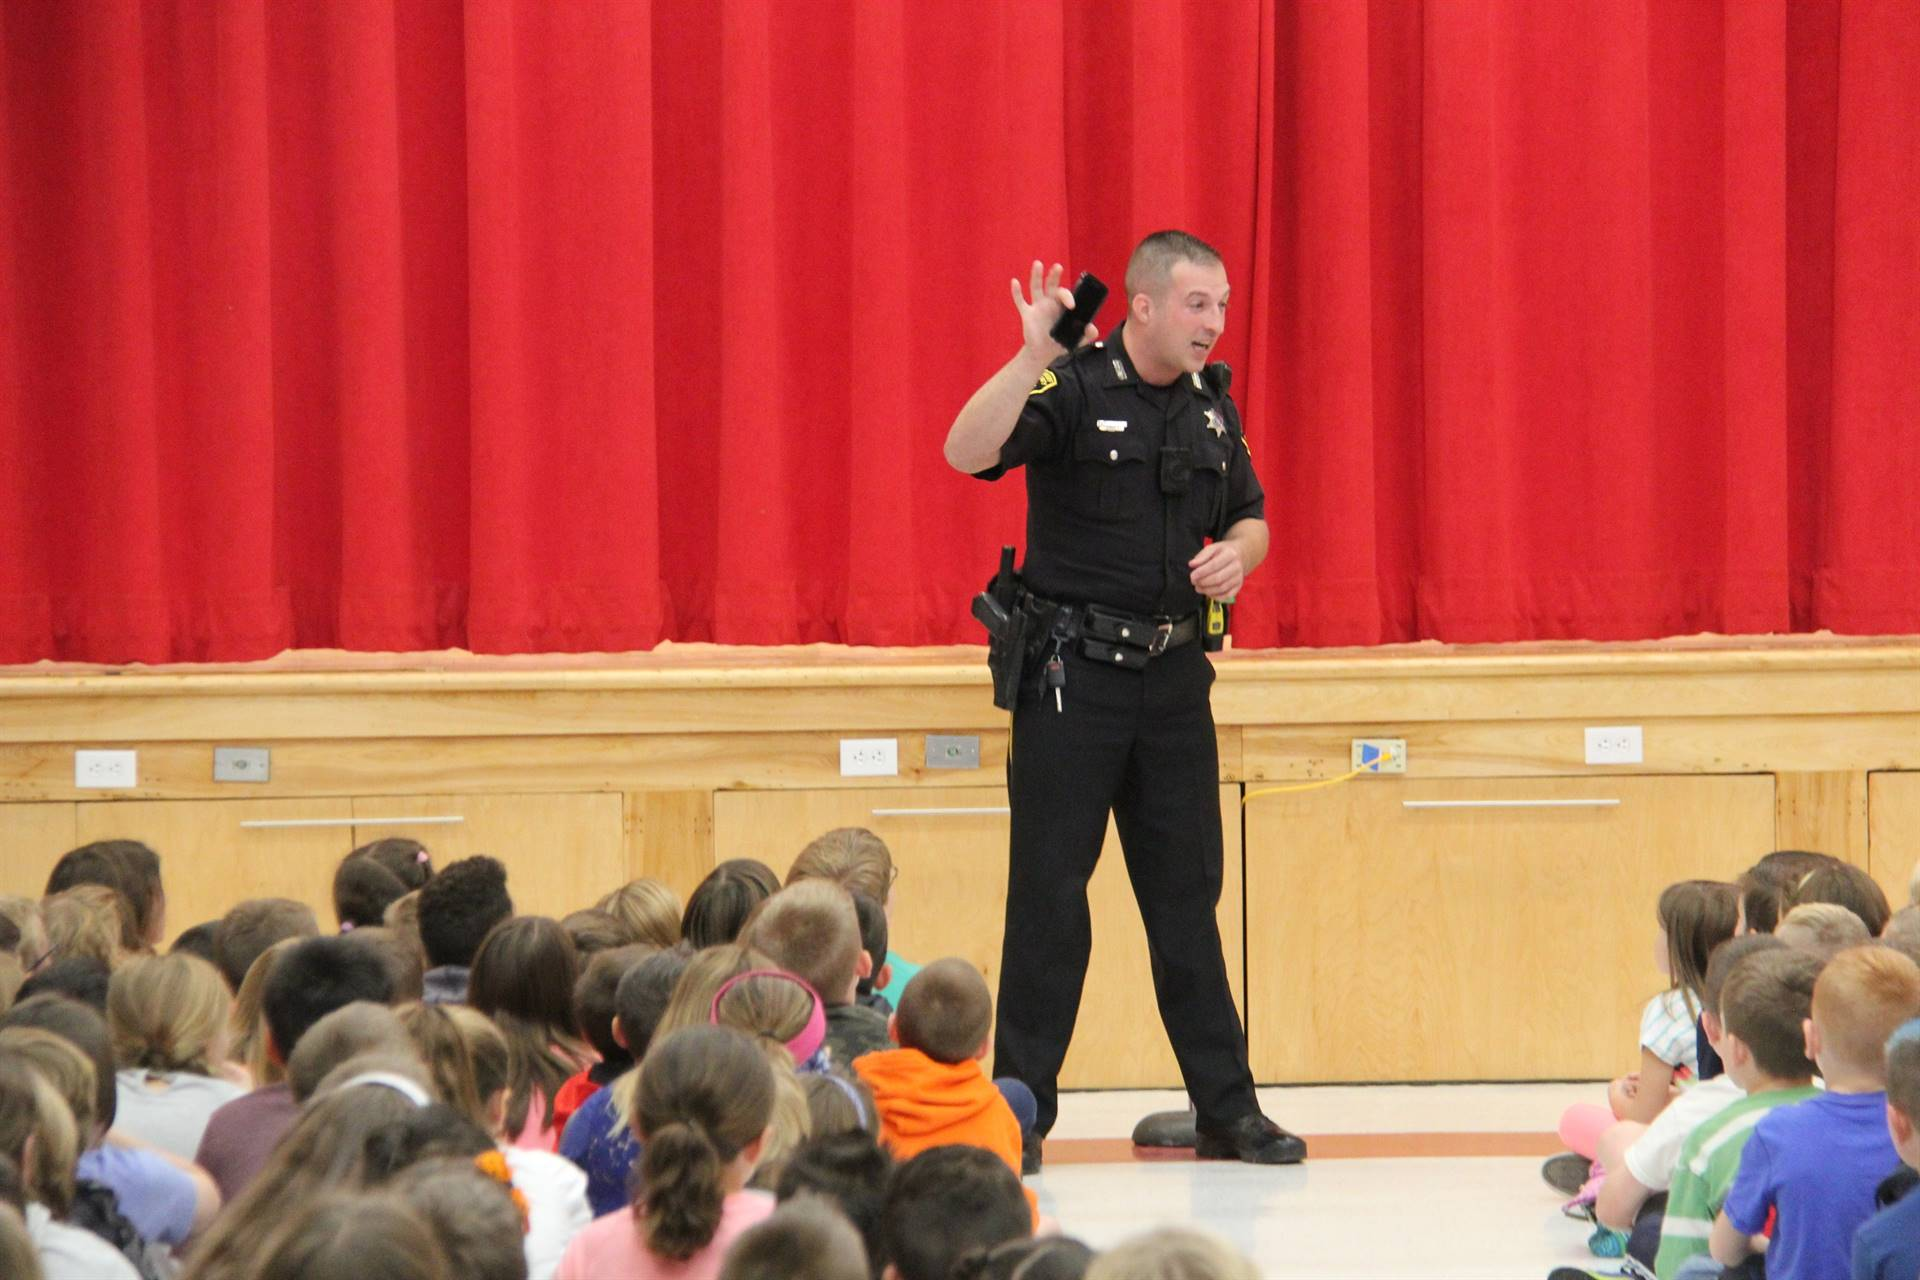 deputy stapleton shows students a cell phone